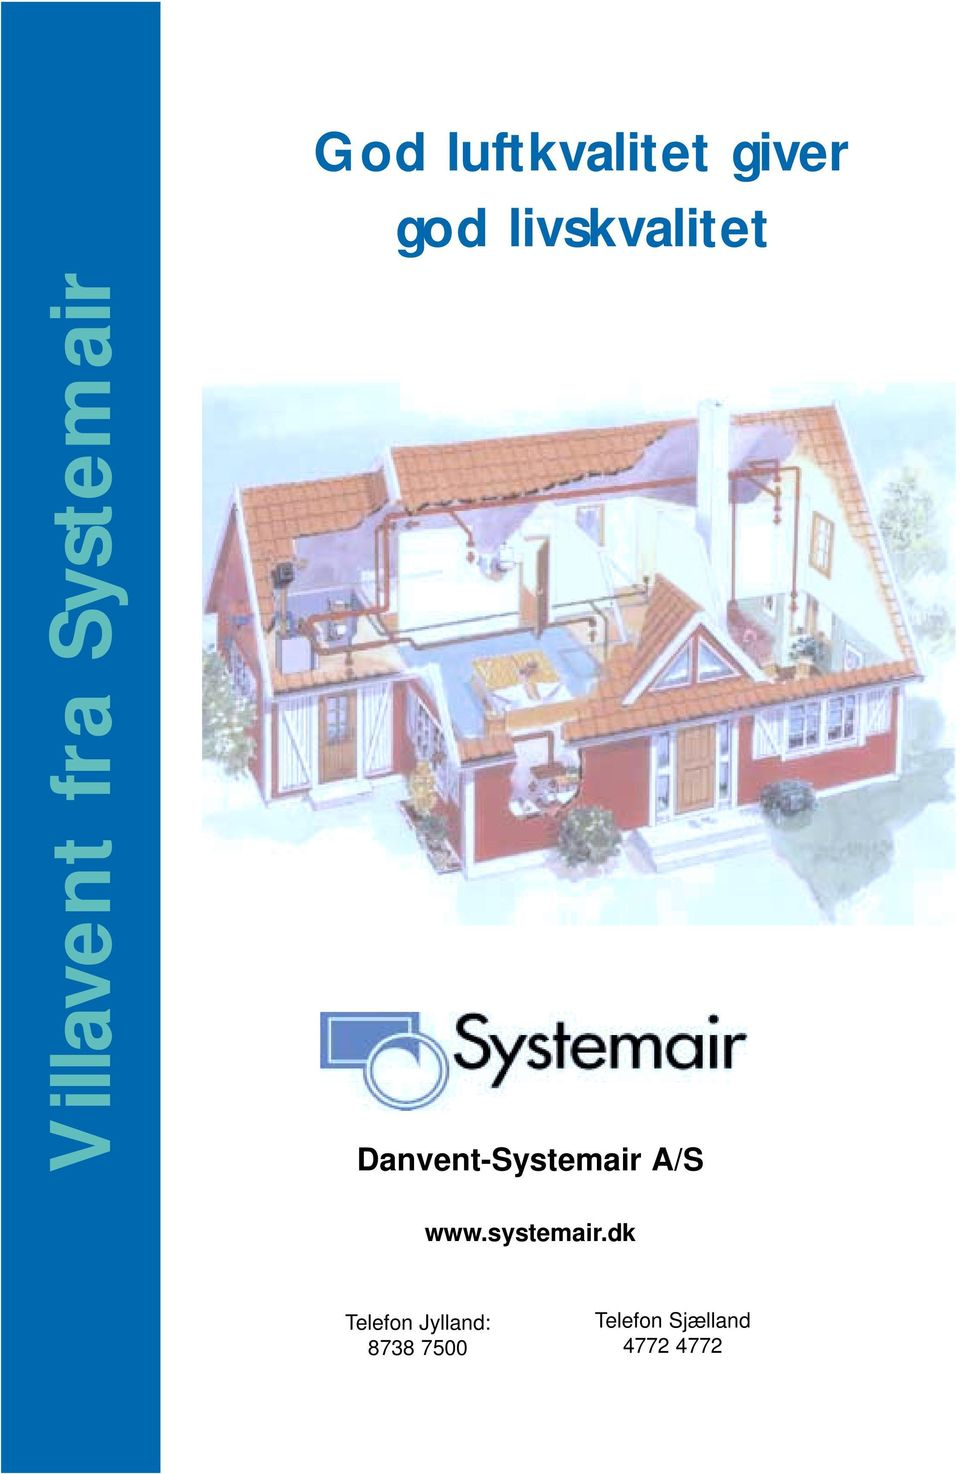 Danvent-Systemair A/S www.systemair.